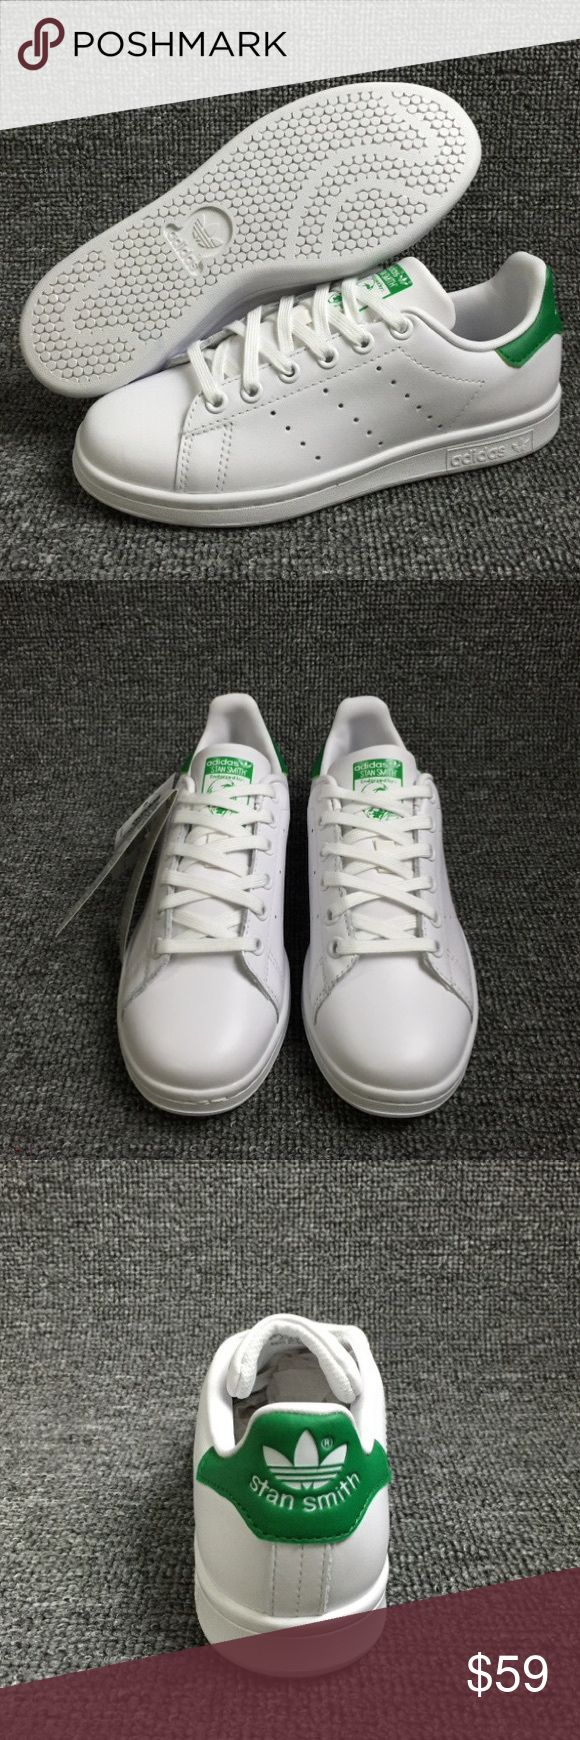 New Adidas Stan Smith Sneakers White Green Unisex Size women 5, 5.5, 6, 6.5, 7, 7.5. ------men 7, 7.5, 8, 8.5, 9, 9.5, 10======if you have any questions, please email me. (fisherlive2012#hotmail.com, @ instead of # ) Adidas Shoes Sneakers